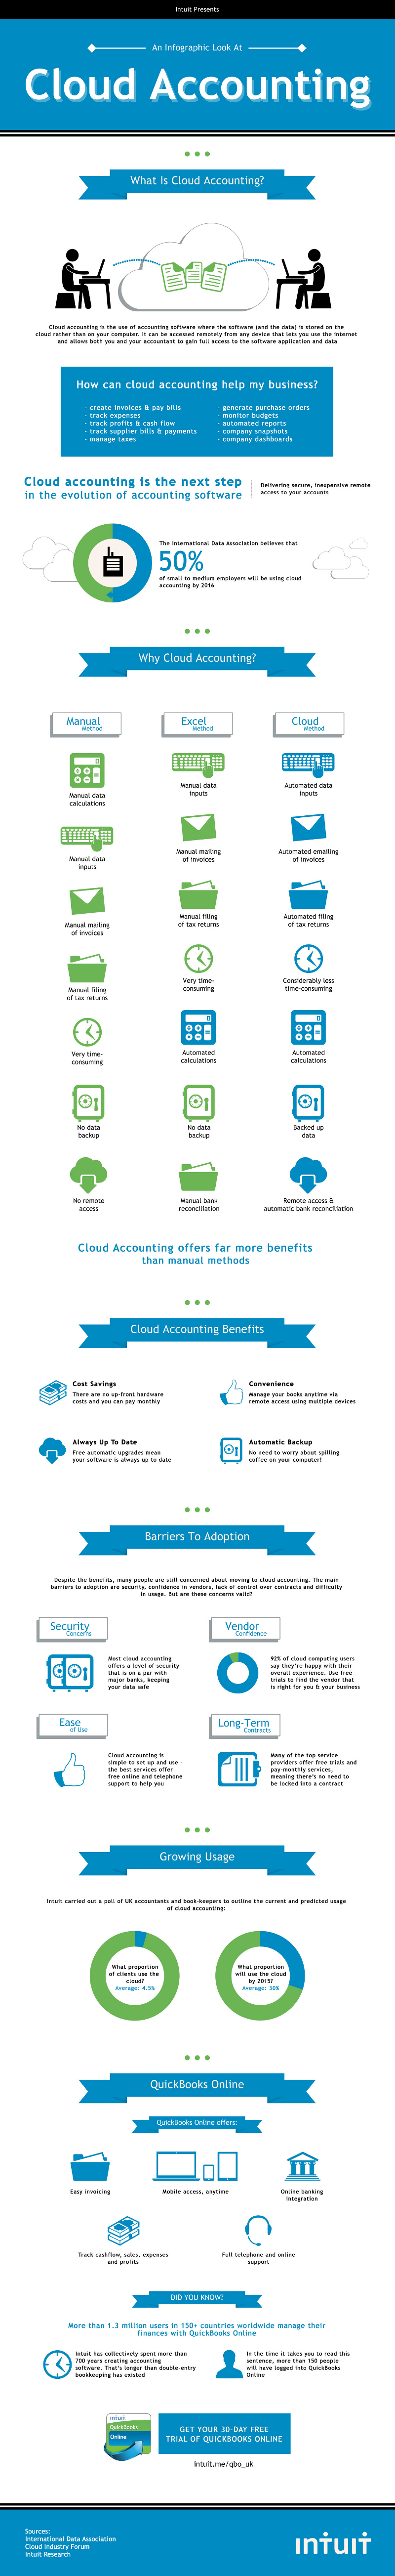 Cloud Accounting Trends